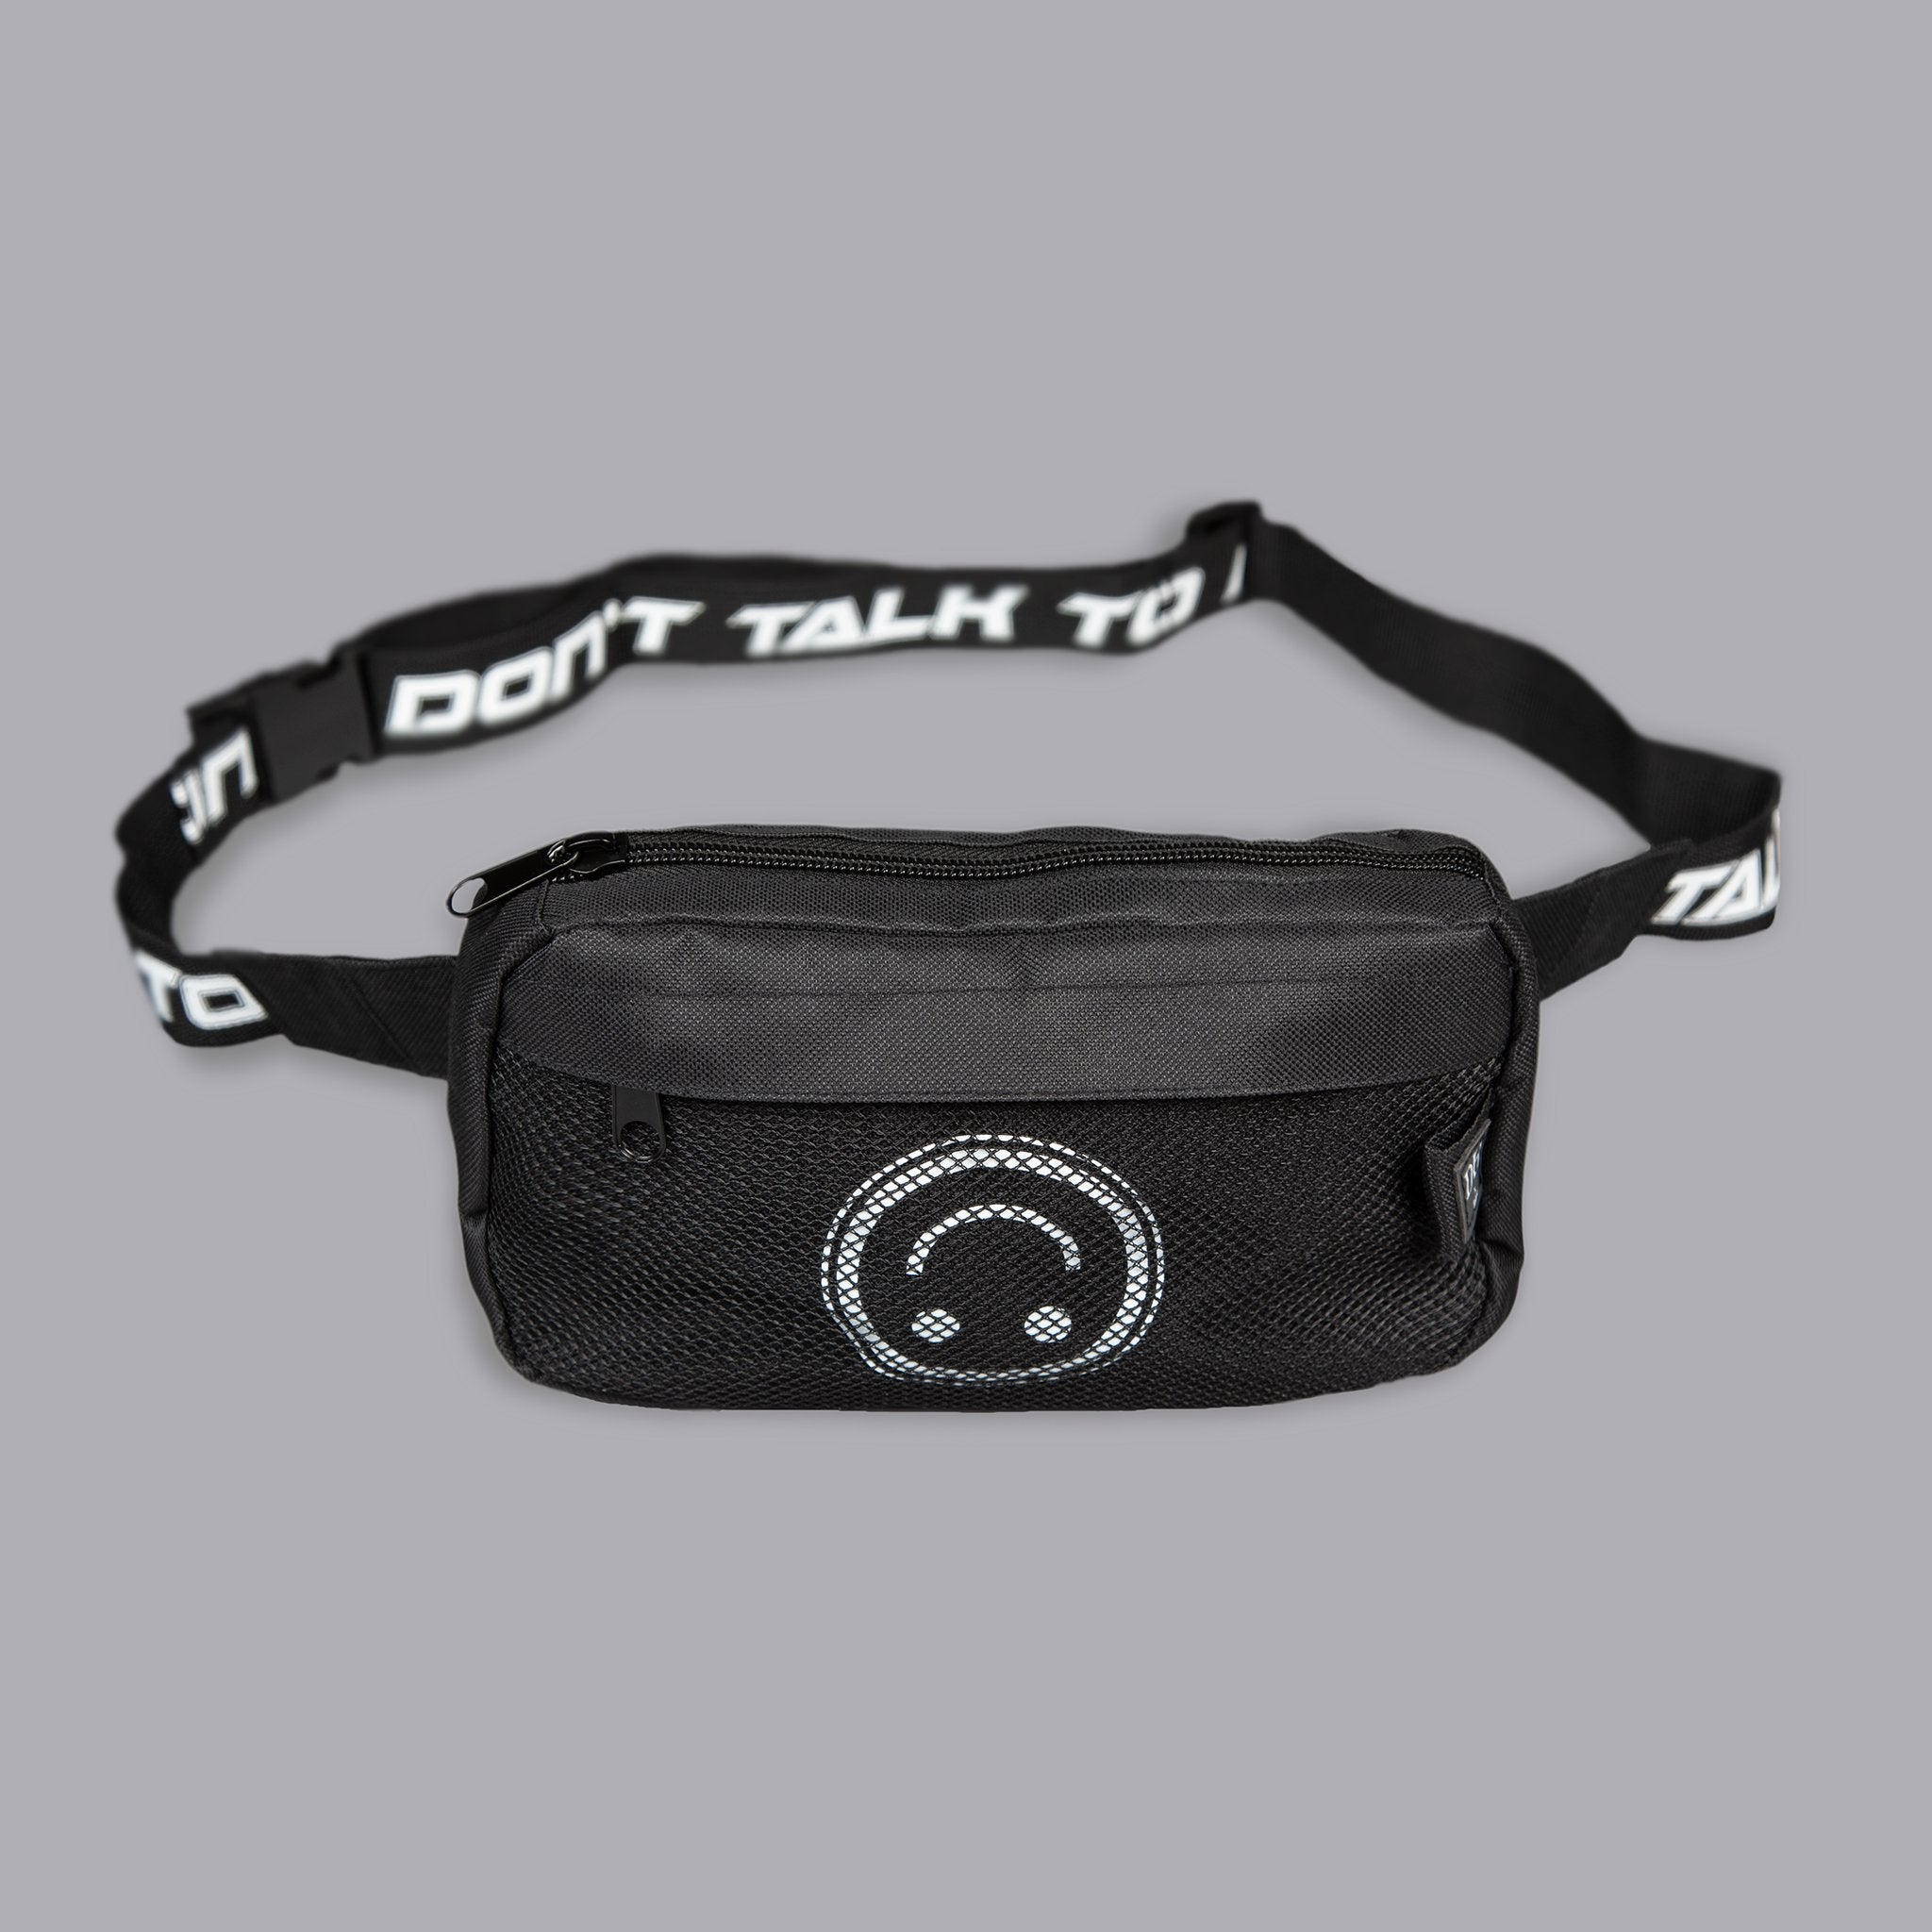 Don't Talk To Me Crossbody Bag